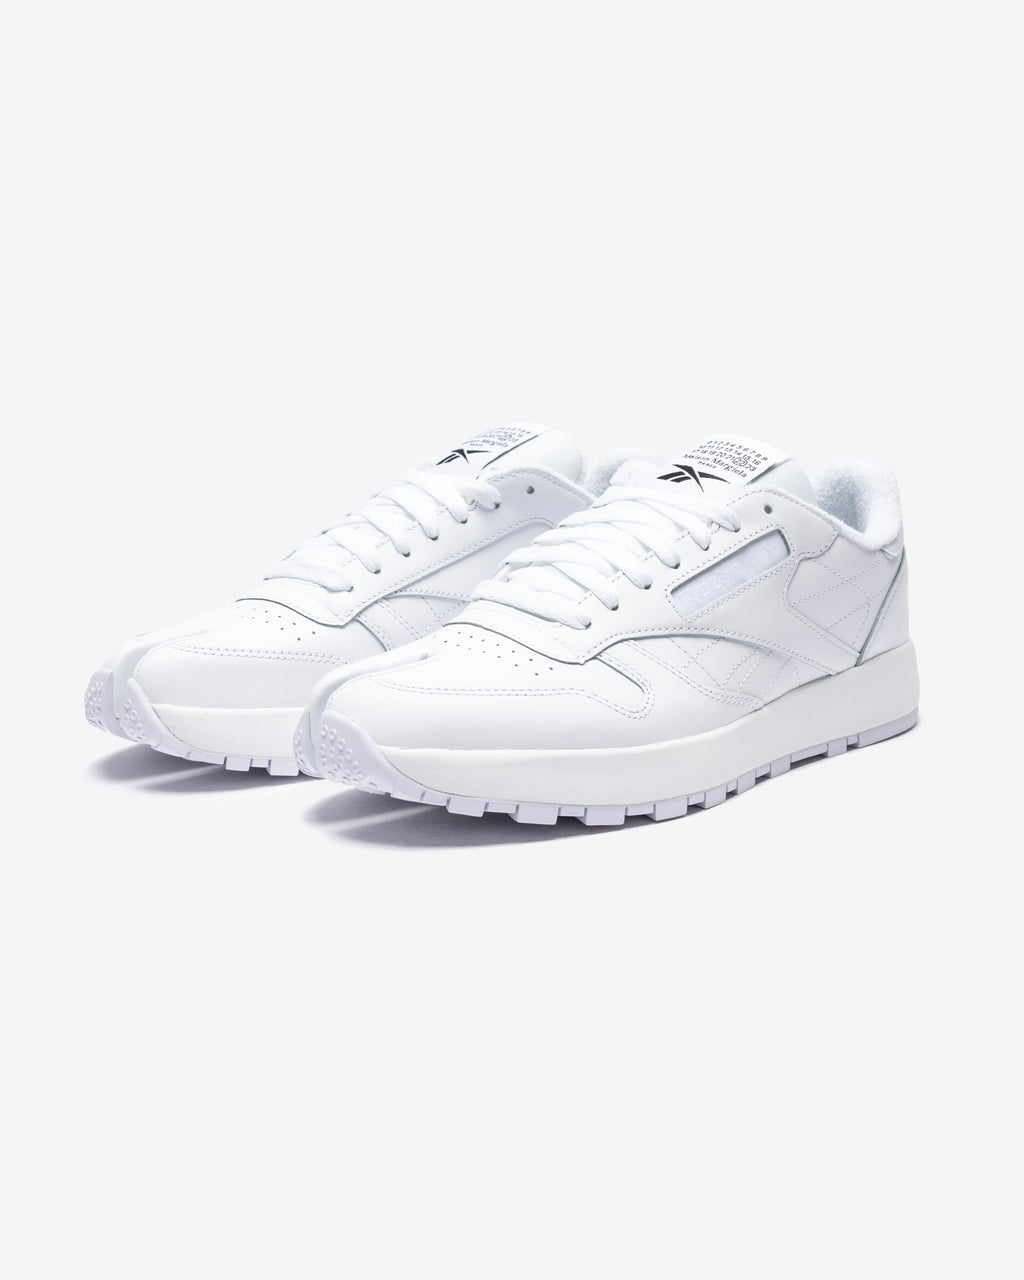 REEBOK X MAISON MARGIELA PROJECT 0 CL - WHITE/ BLACK